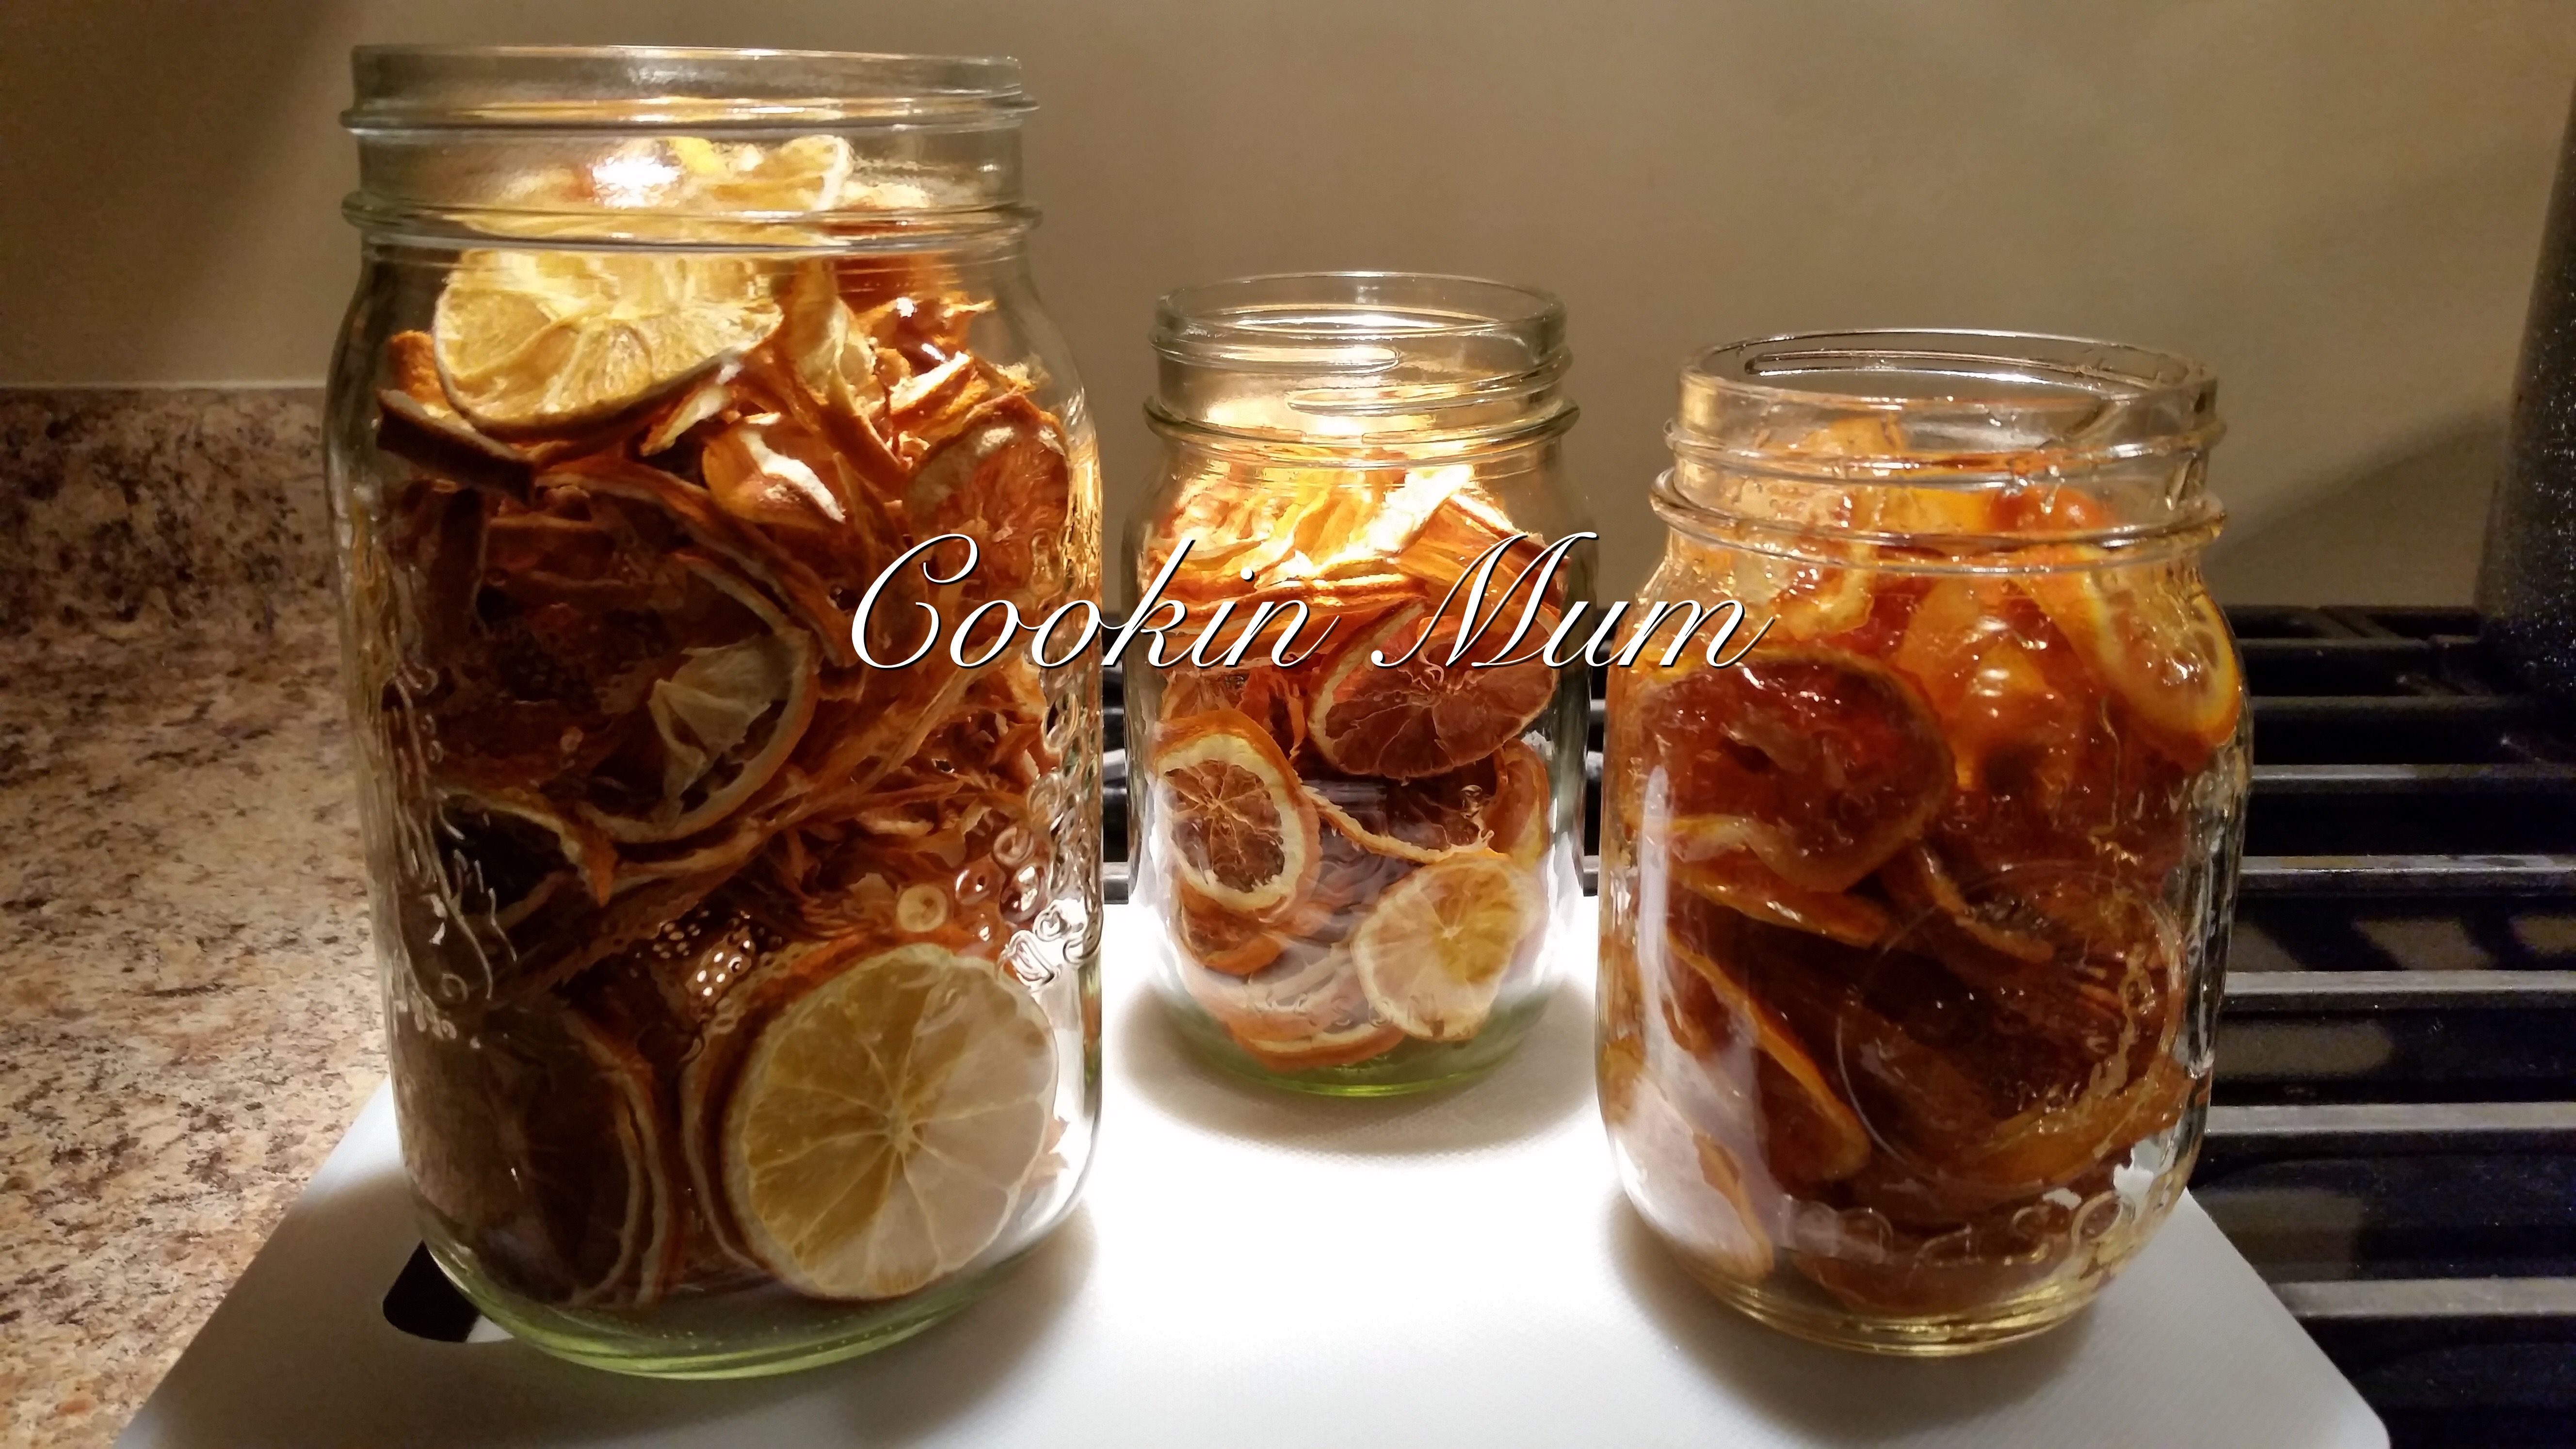 Here we have some Lemons and Oranges I dehydrated. It a great way to save produce and store for the winter. Use them in Tea. Use them as powder just grind in a coffee grinder. Mix with sugar and voila orange sugar or lemon sugar